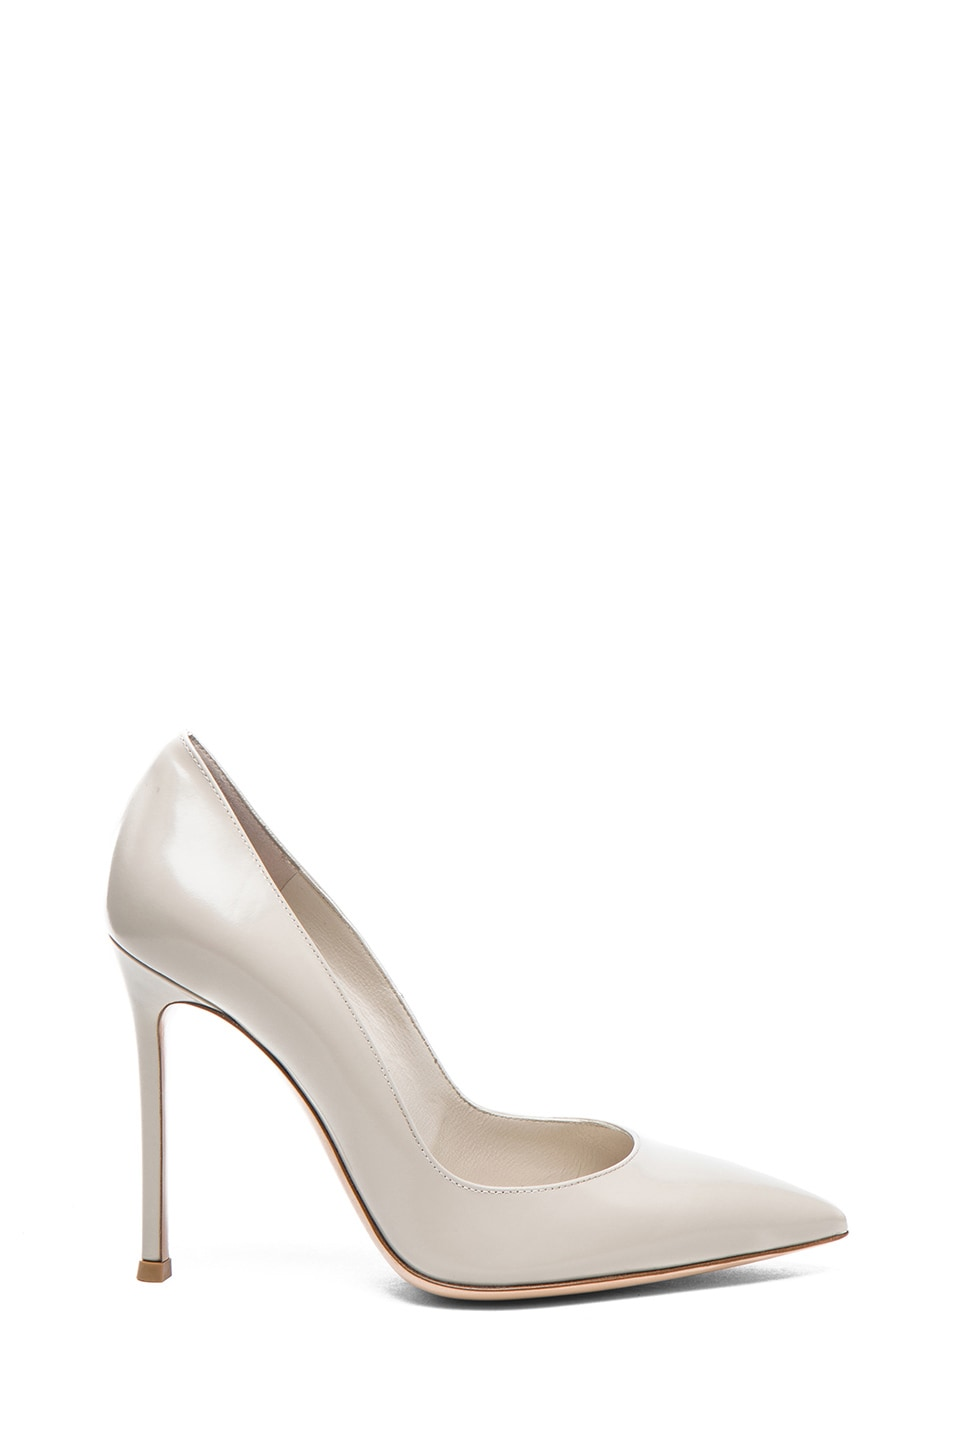 Image 1 of Gianvito Rossi Leather Pumps in Shell